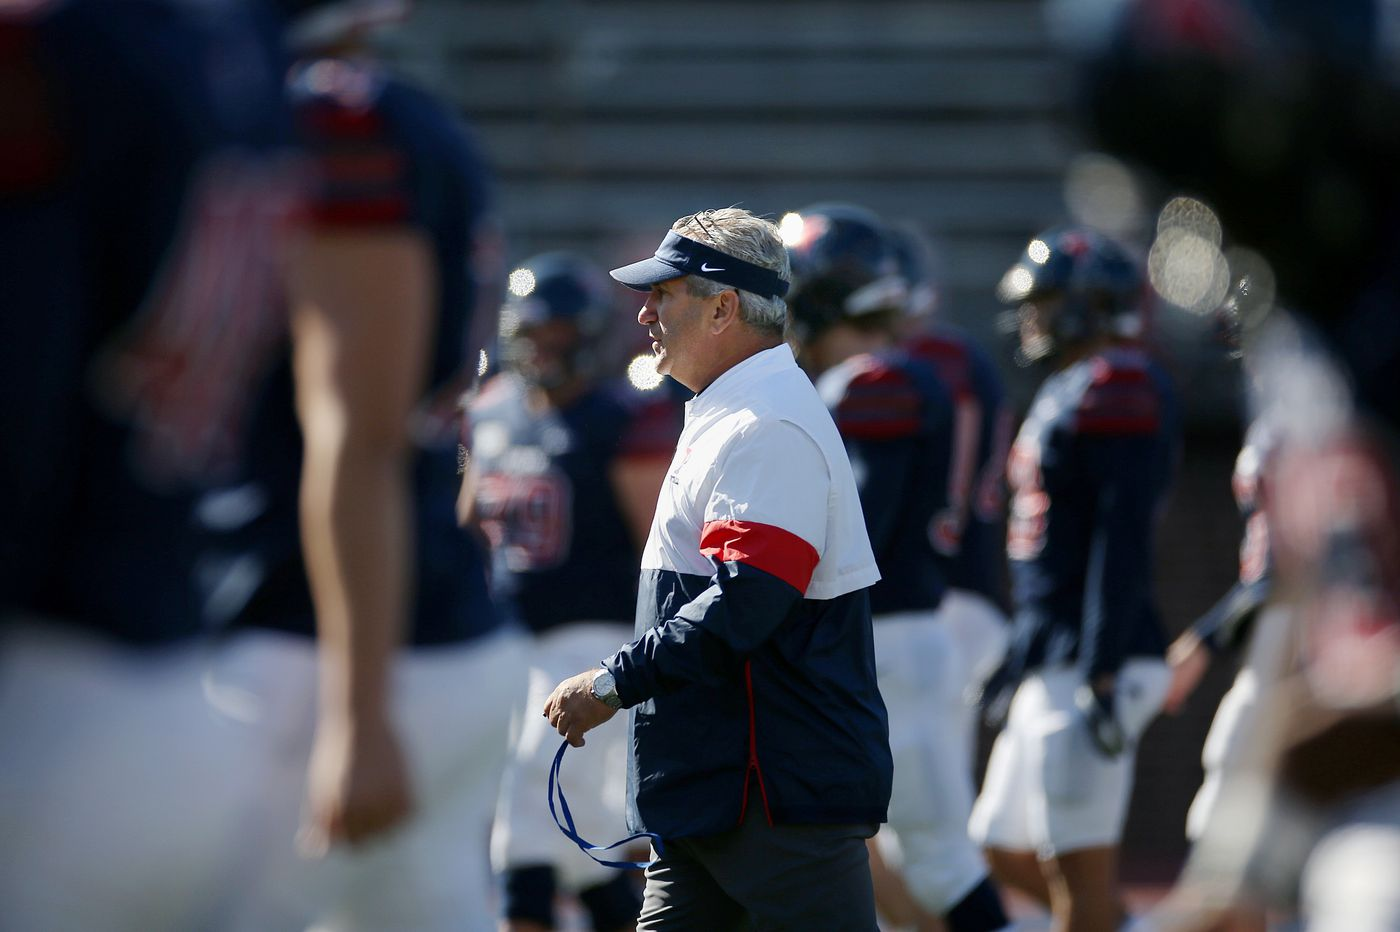 Penn football coach Ray Priore talks about no fall season, hope for spring | Mike Jensen